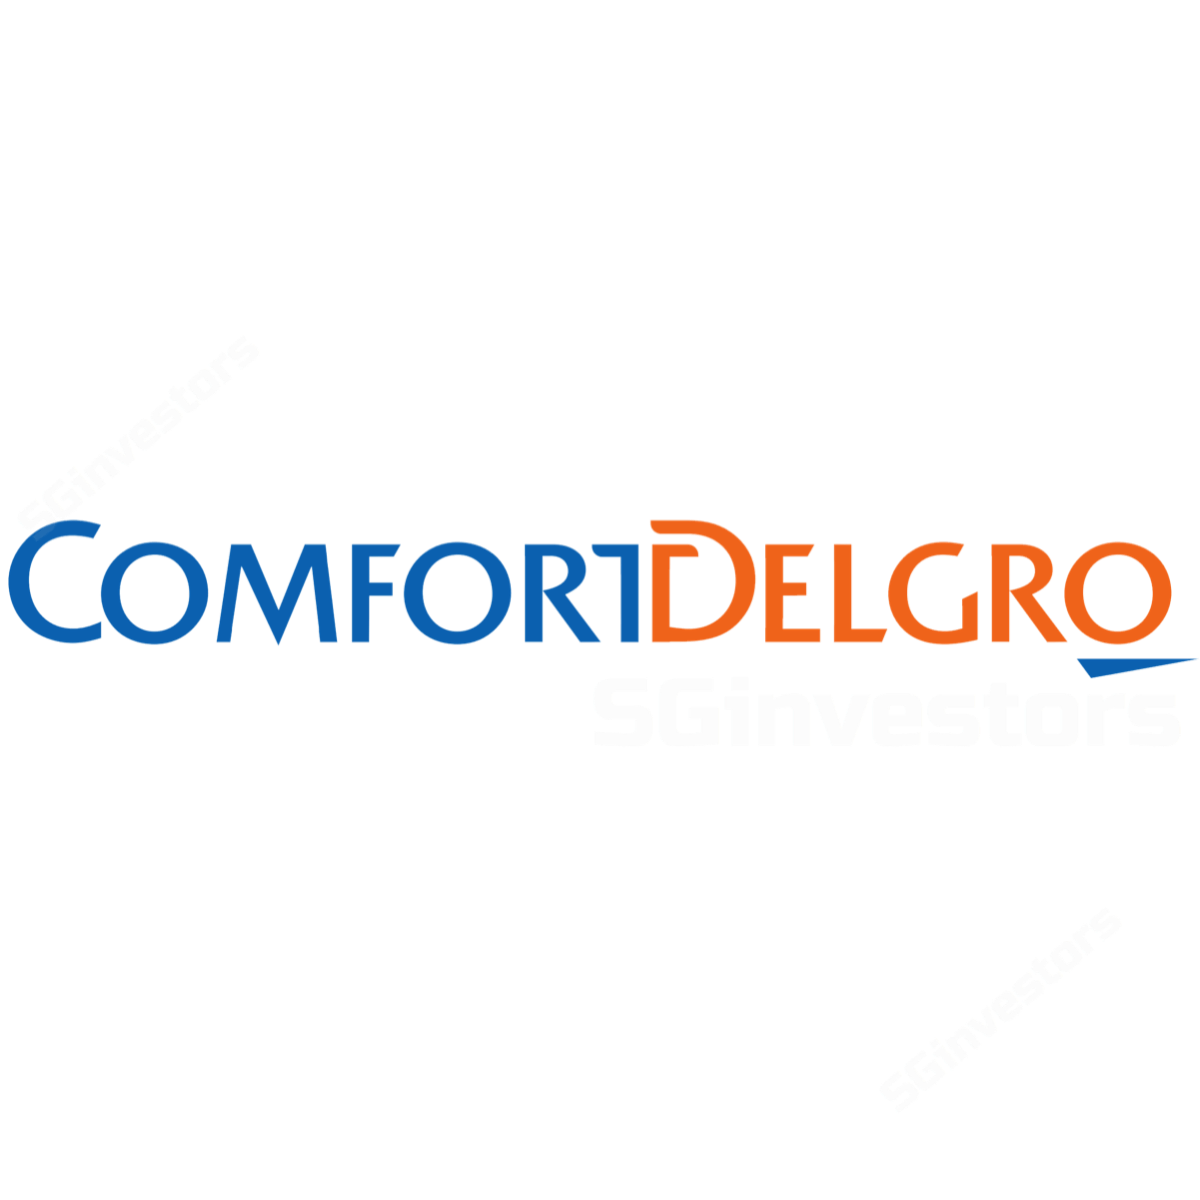 ComfortDelGro Corporation - RHB Invest 2018-02-15: North East Line Transitions To NRFF